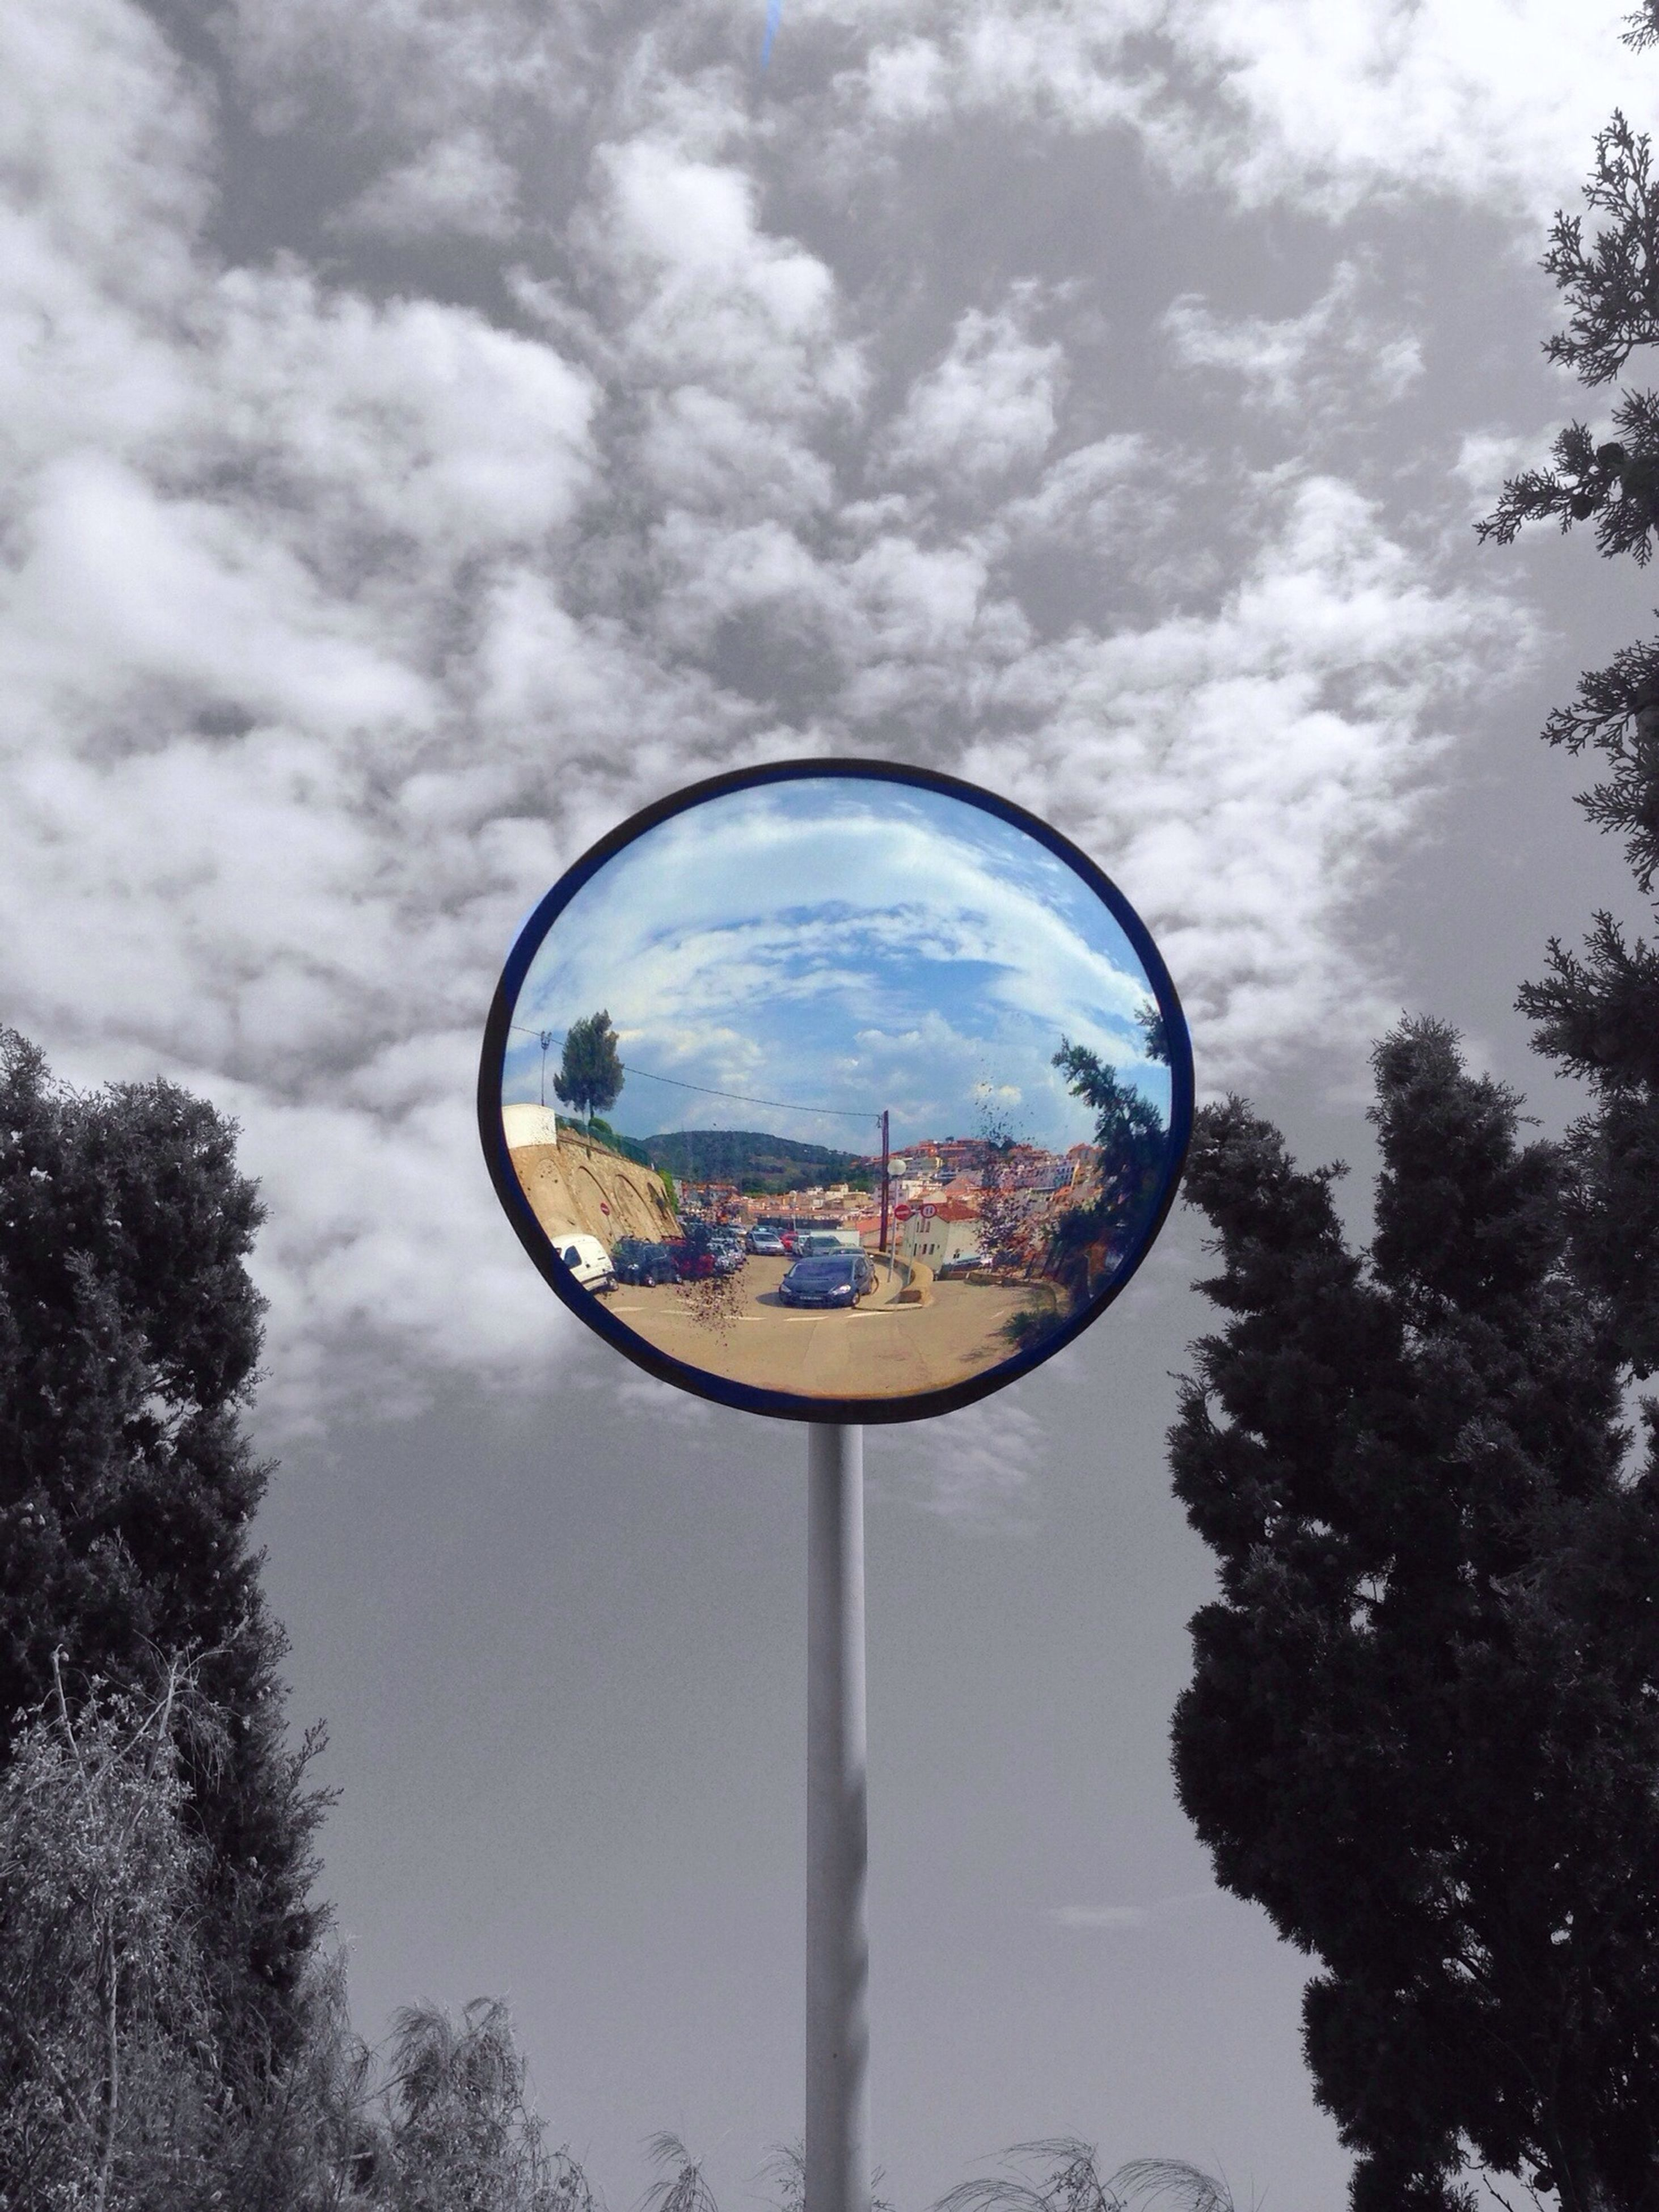 tree, sky, cloud - sky, reflection, cloud, transportation, low angle view, cloudy, circle, mode of transport, day, outdoors, nature, water, blue, no people, tranquility, silhouette, ferris wheel, tranquil scene